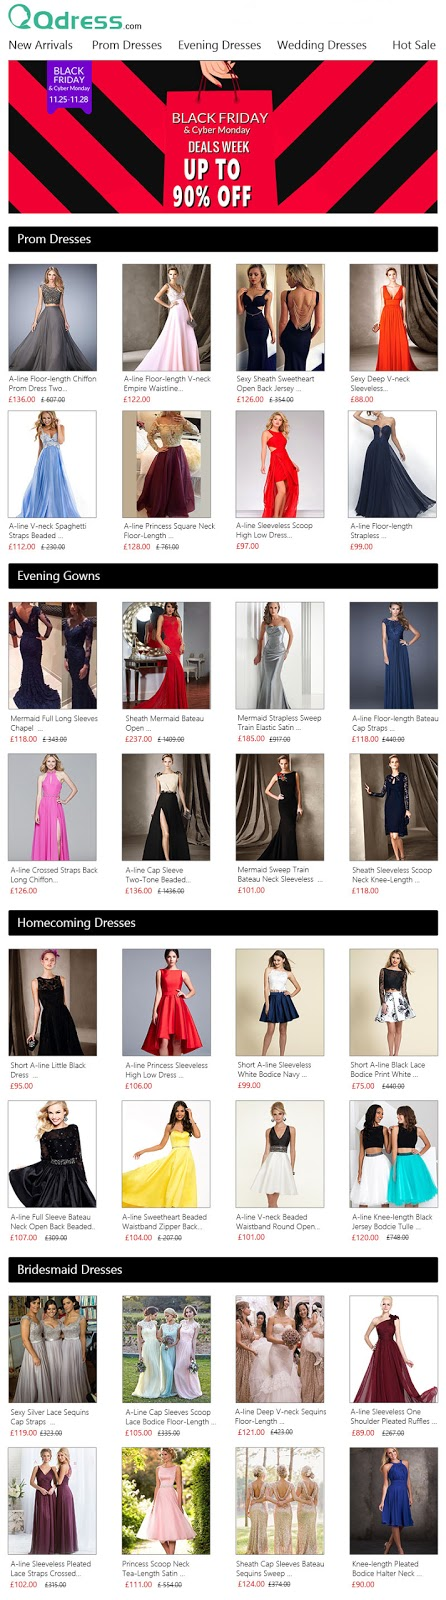 2016 black friday & cyber monday dresses deals